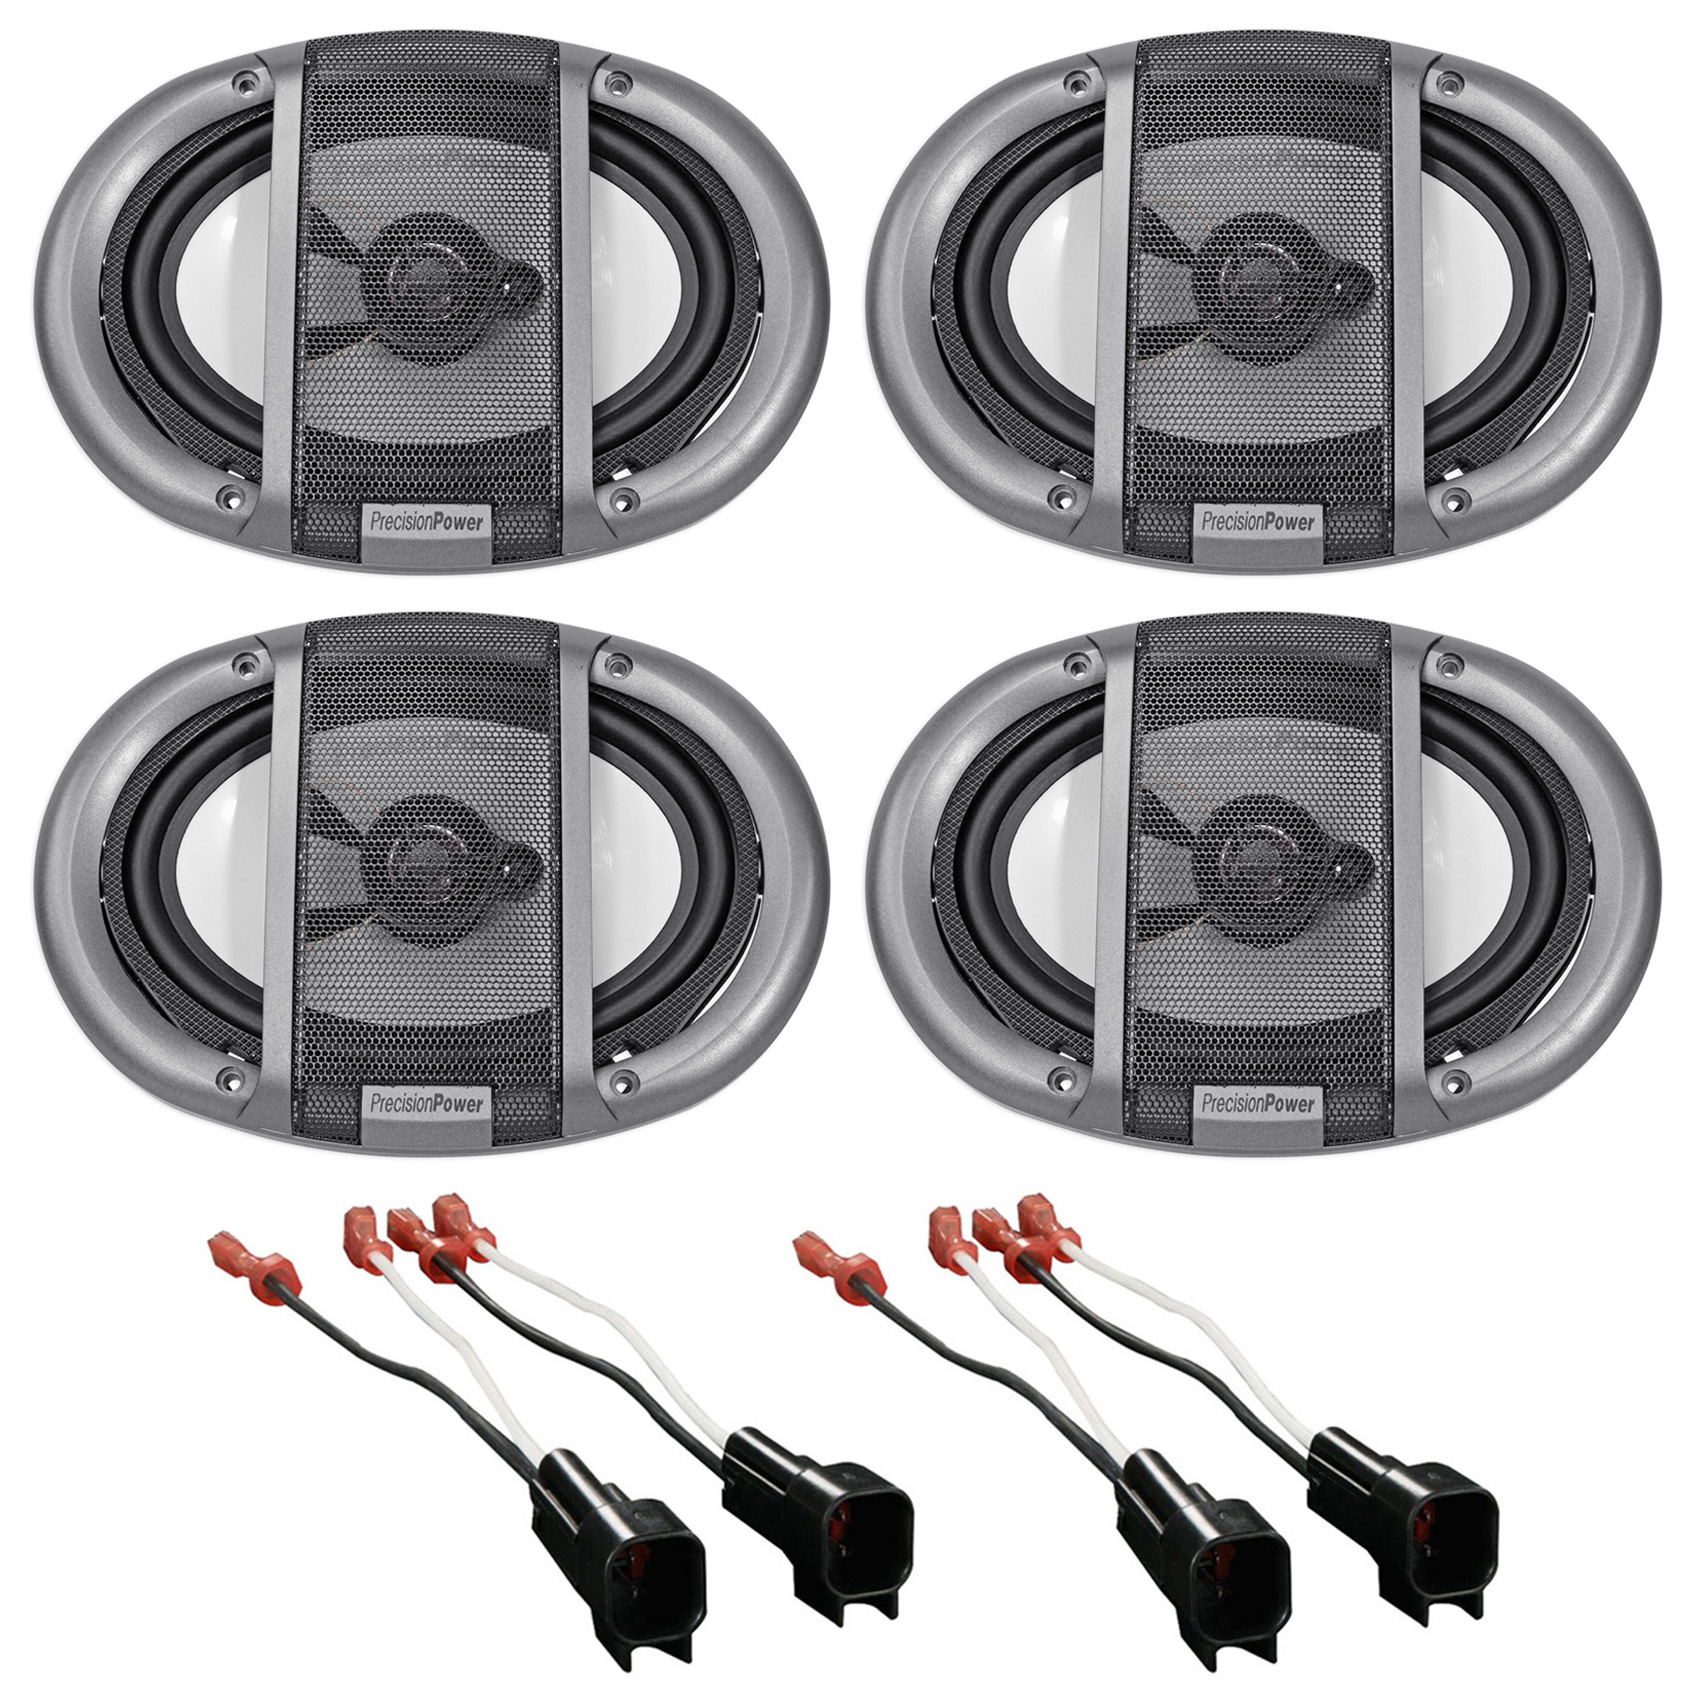 hight resolution of 2007 ford mustang precision front rear factory speaker replacement kit harness walmart com